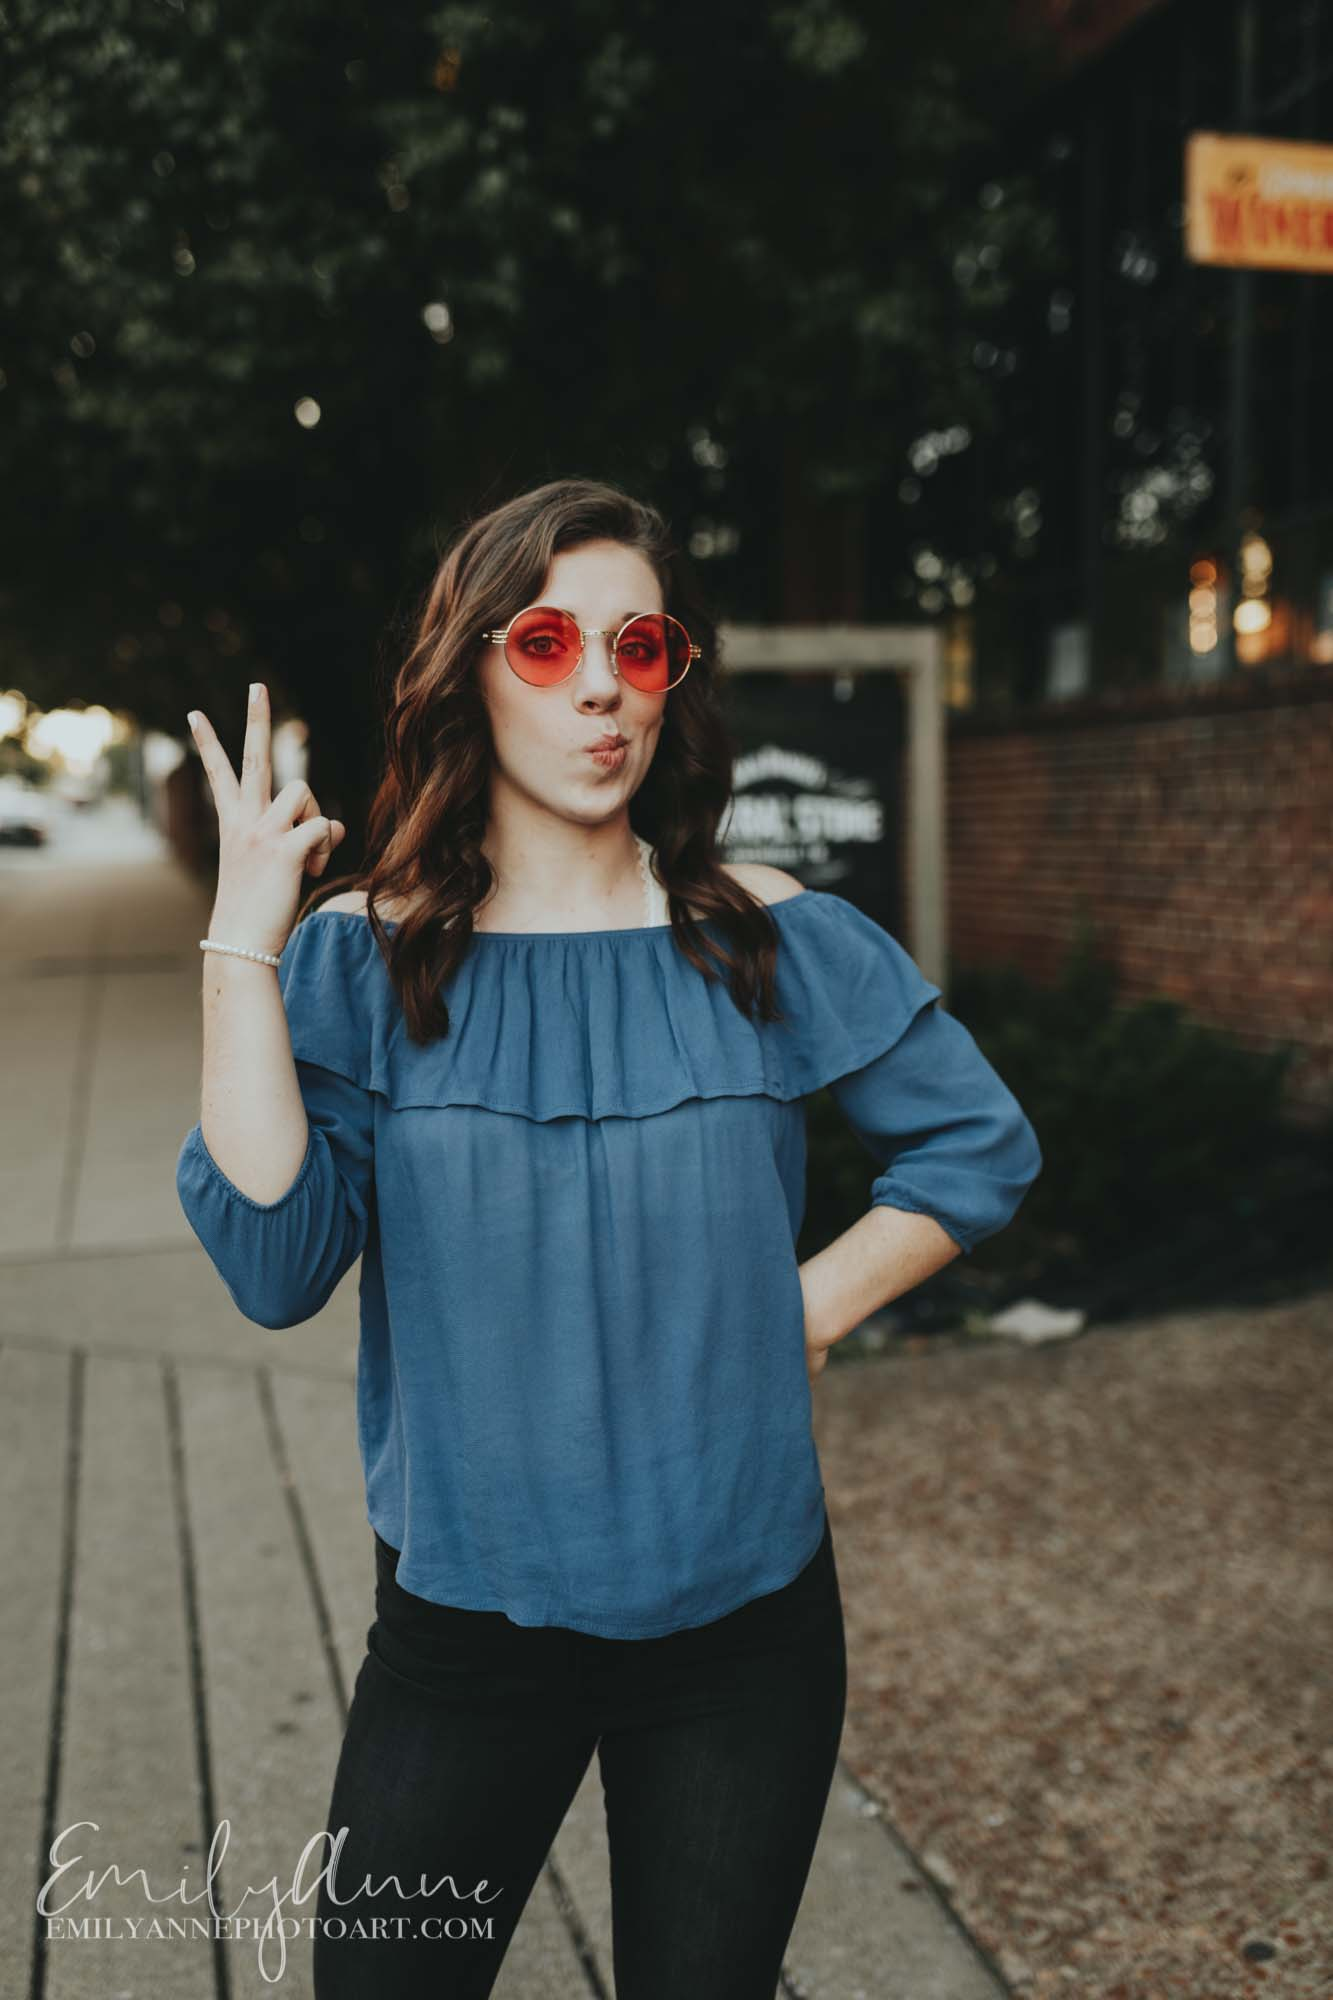 peace out fun sunglasses idea for pictures